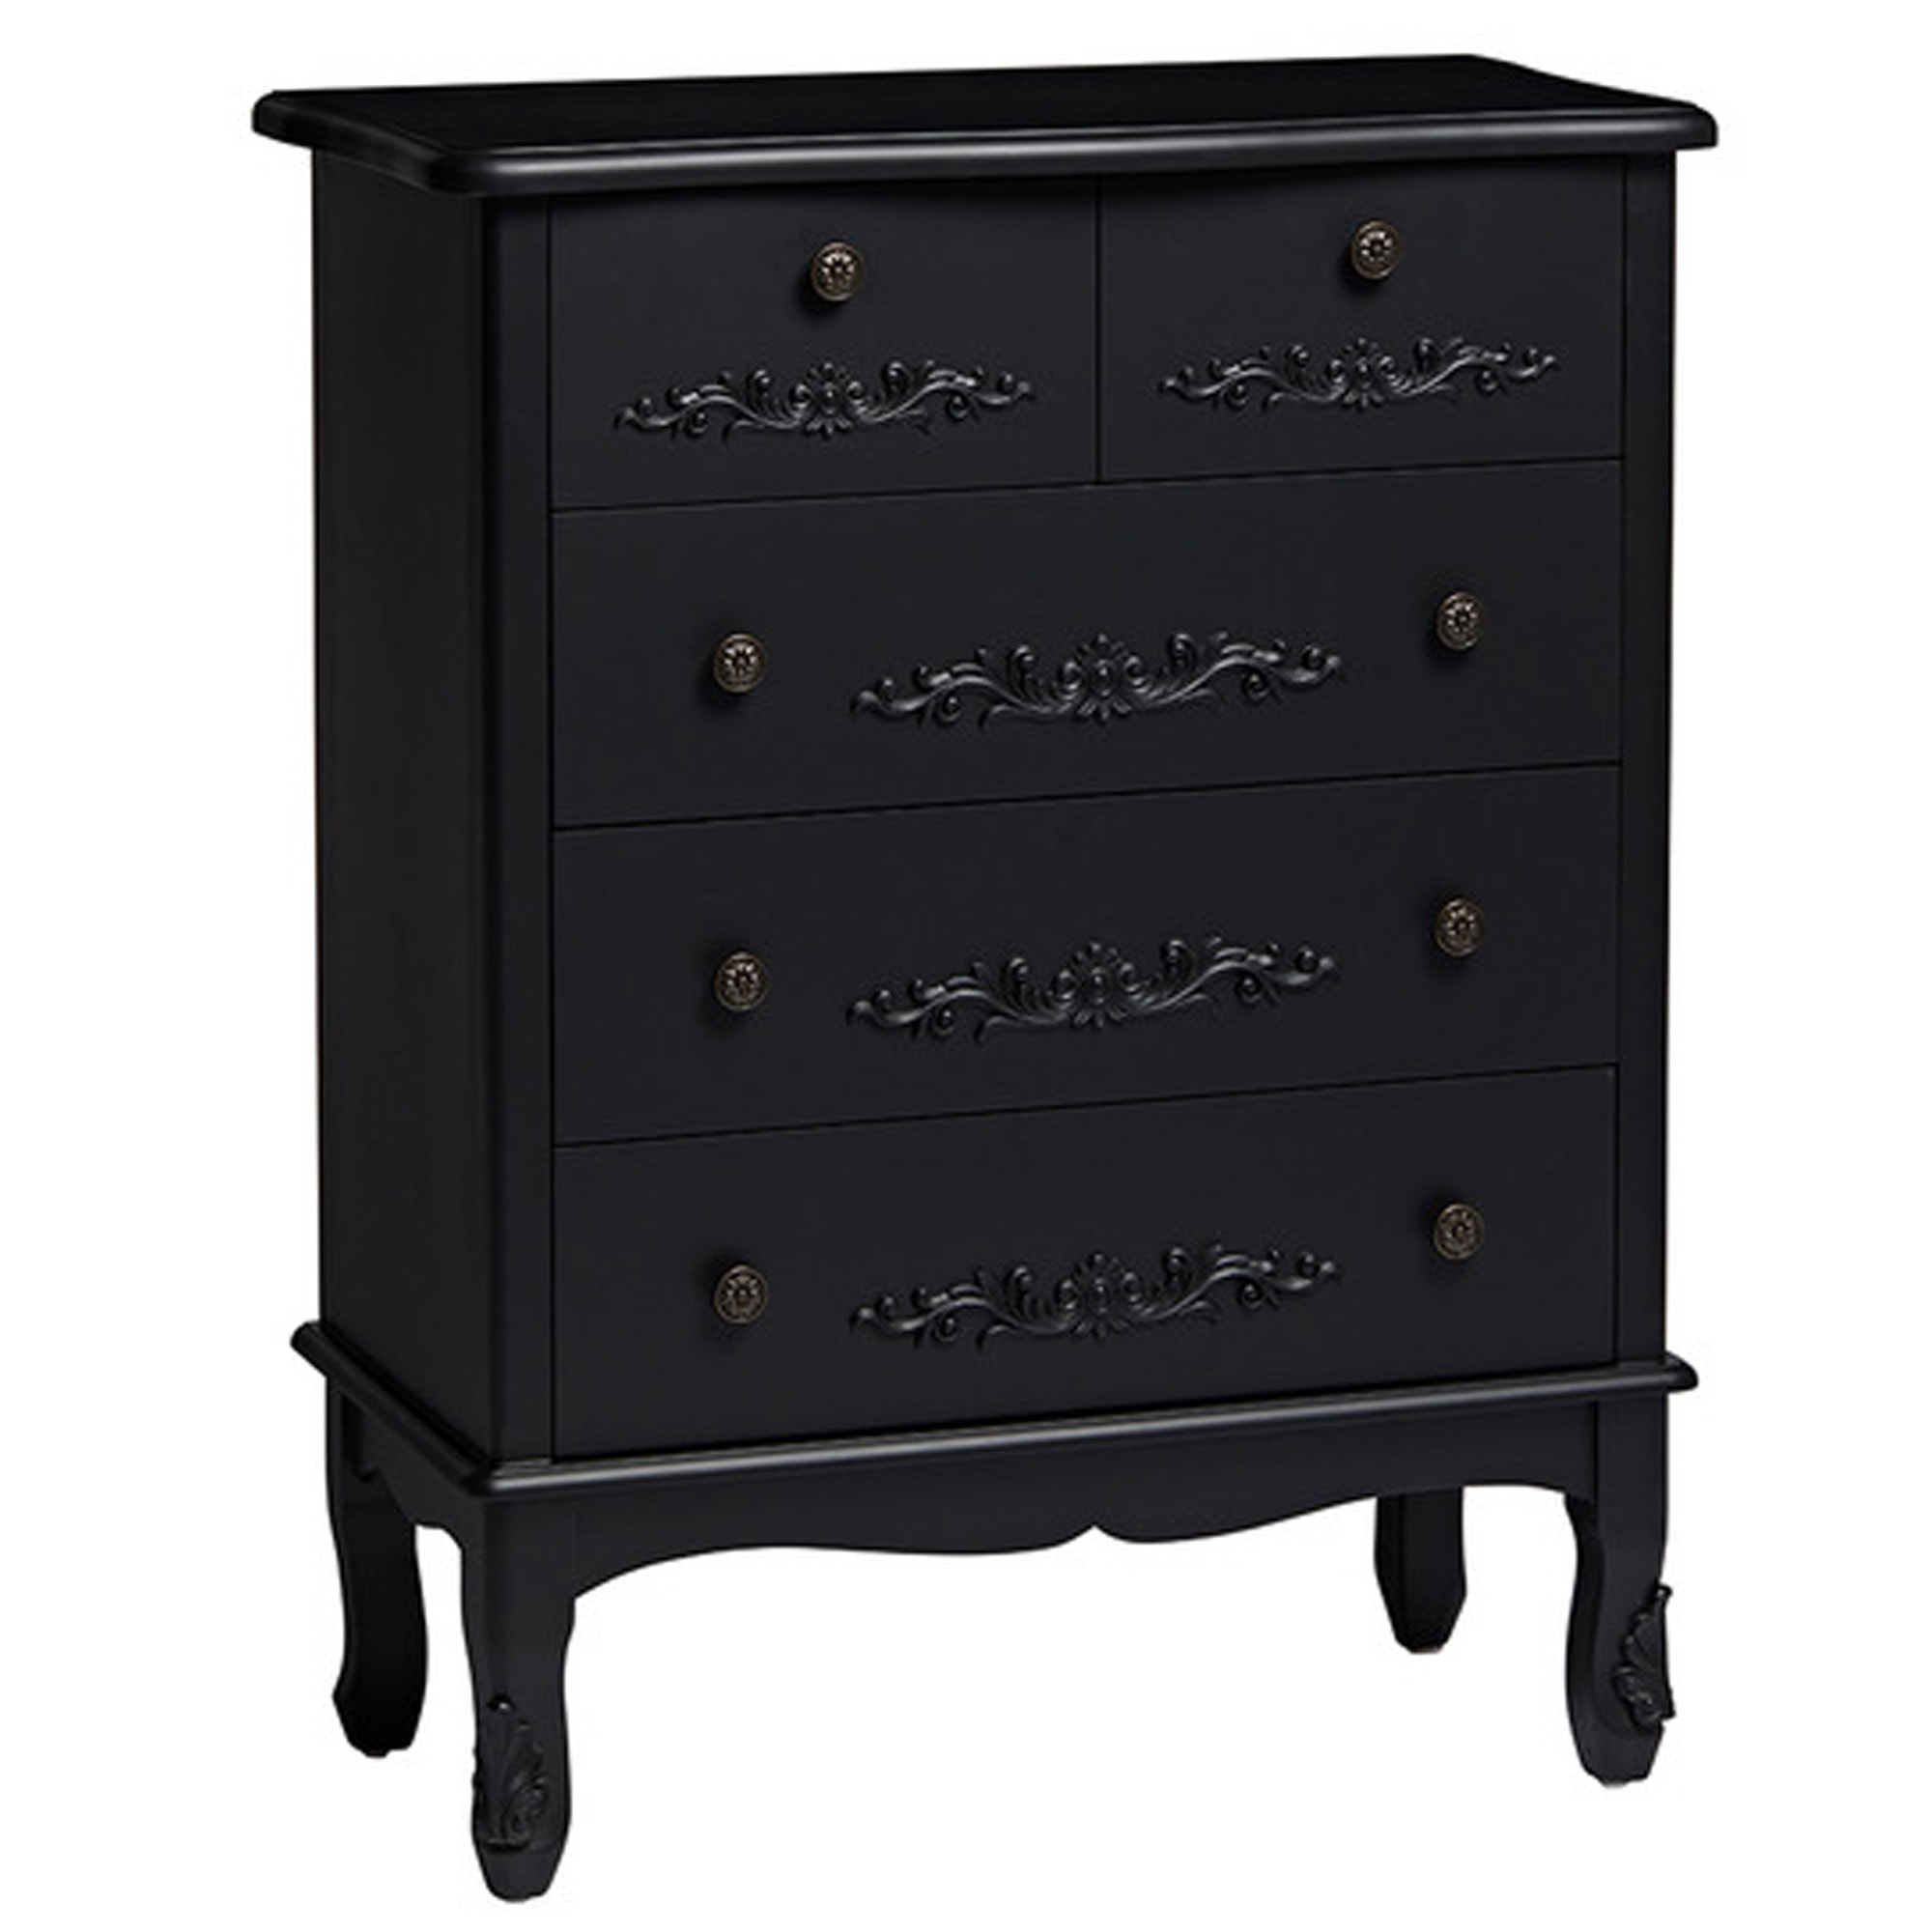 promo code 9c576 f5f1d Antique French Style Black Antoinette Large Chest Of Drawers